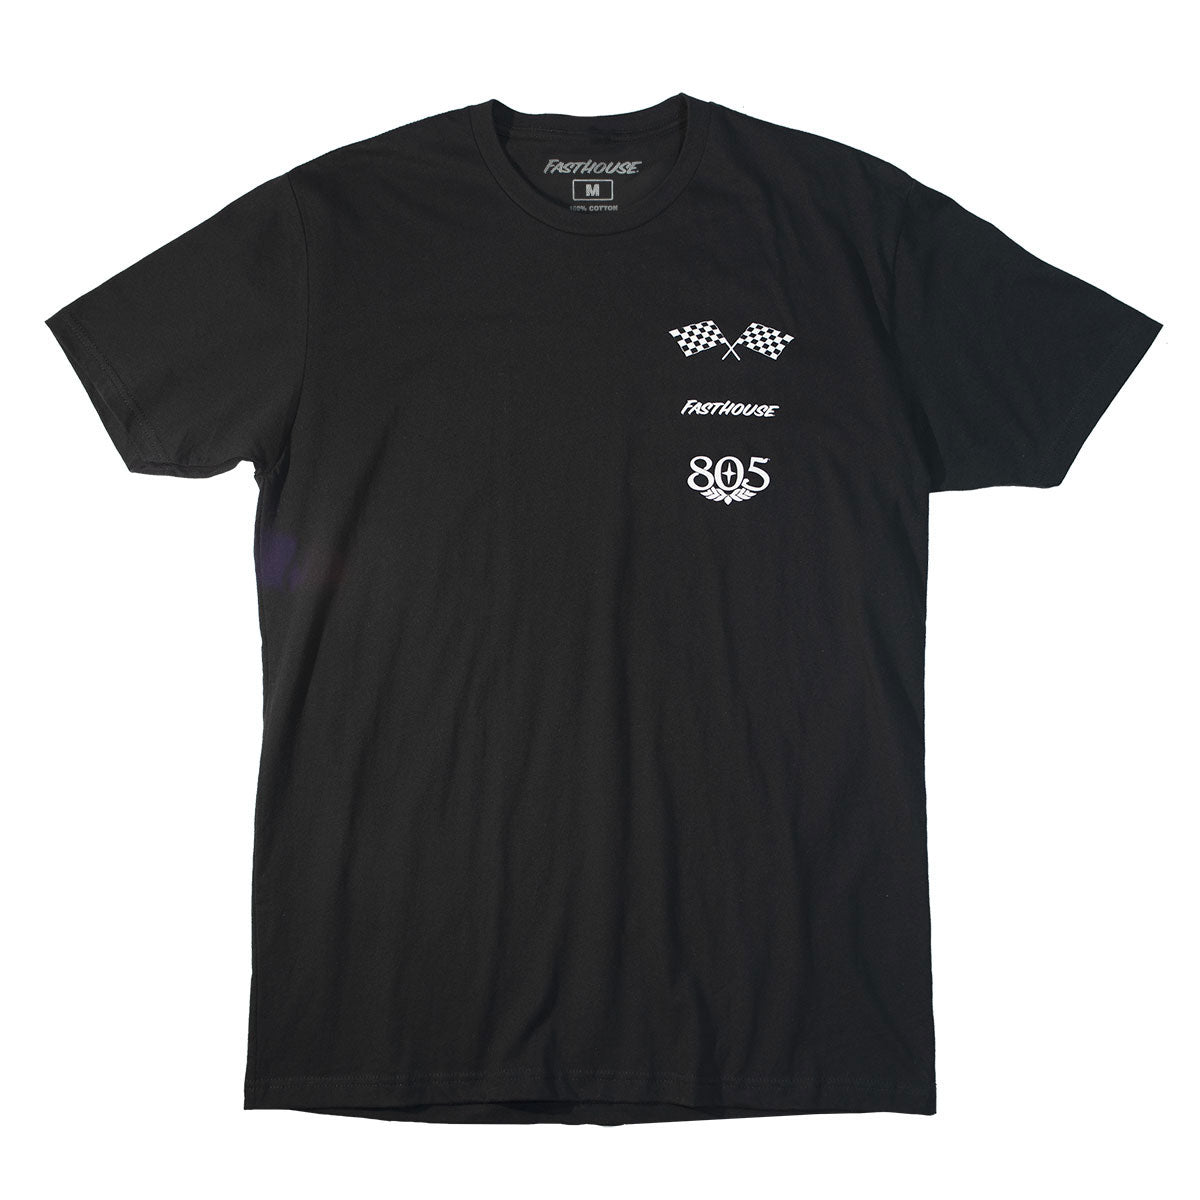 Fasthouse - 805 Hot Rod Tee - Black